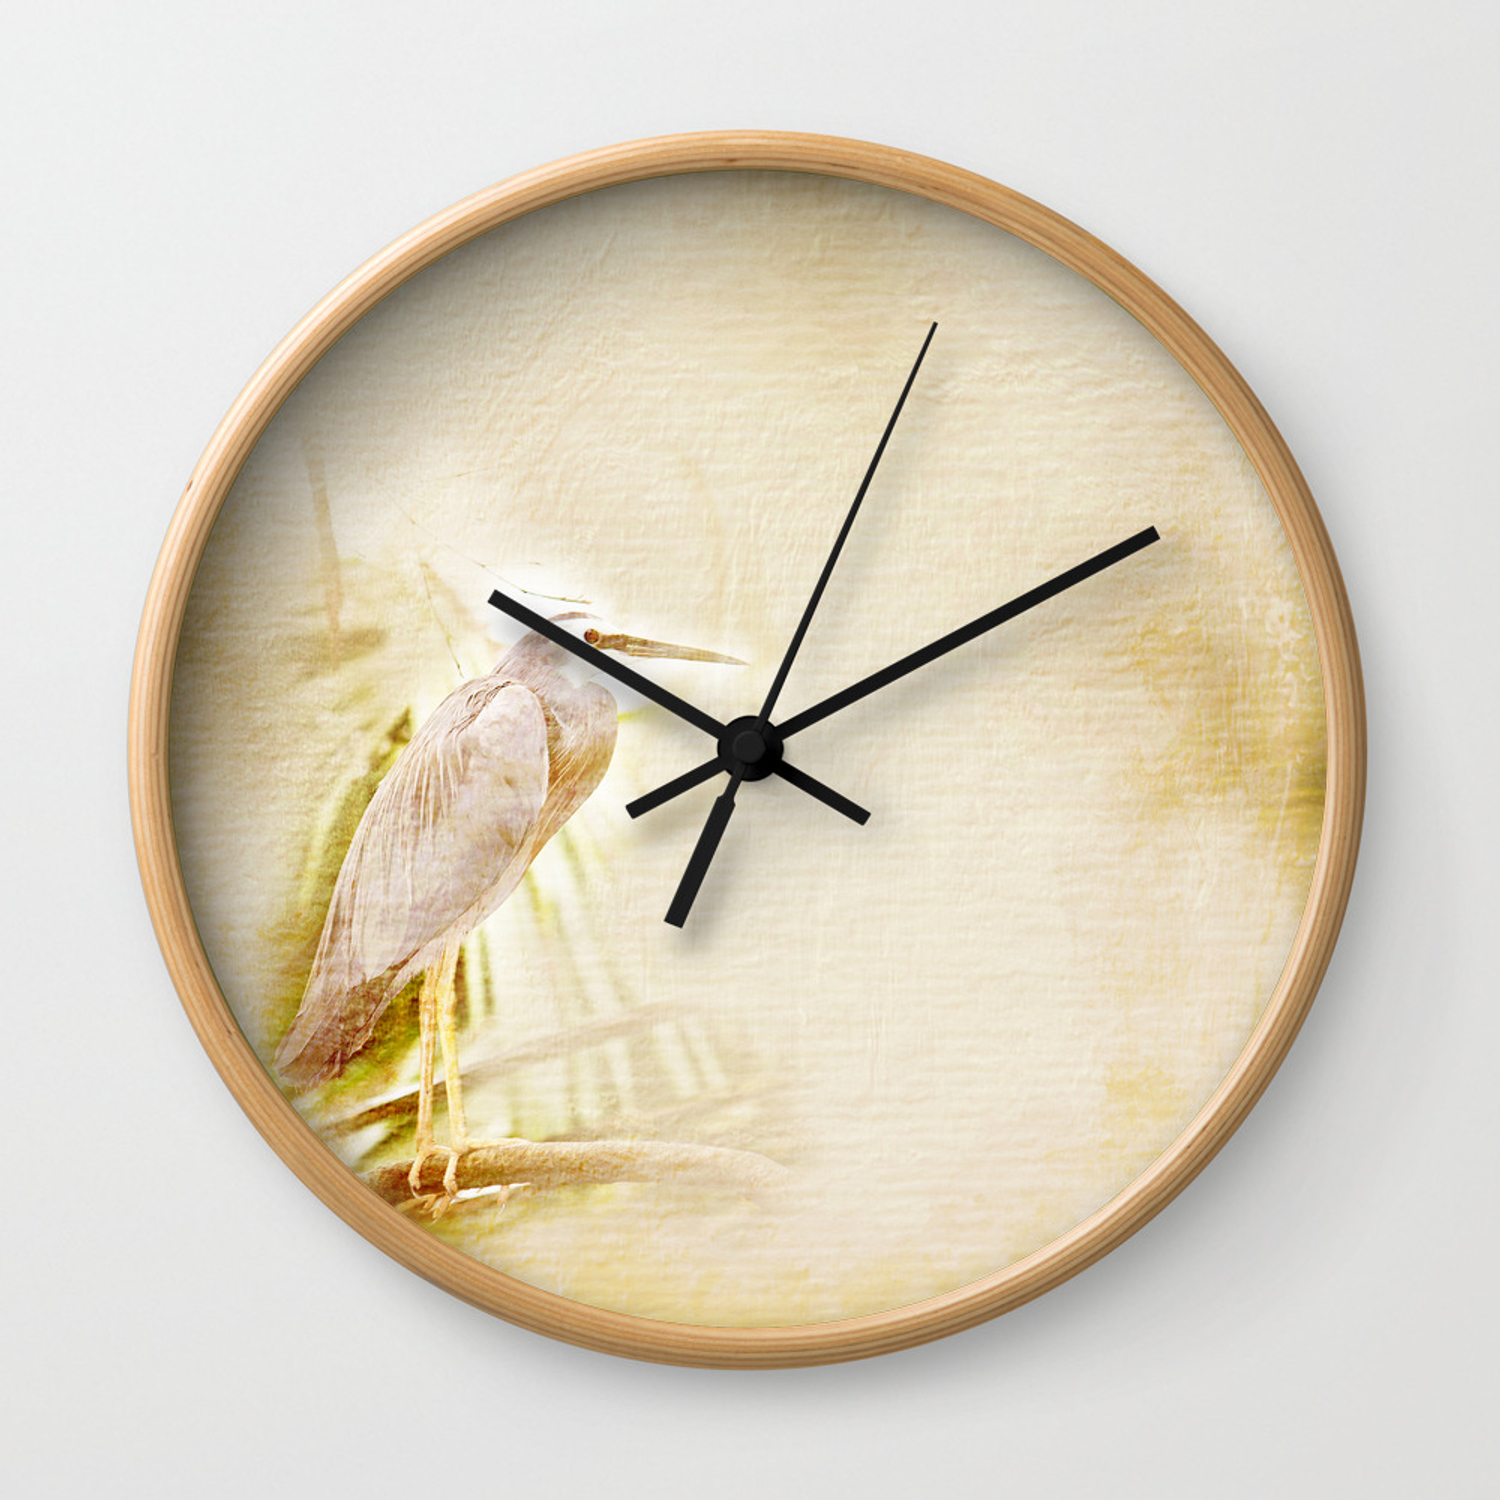 Antique Style Blue Heron On Textured Background Wall Clock